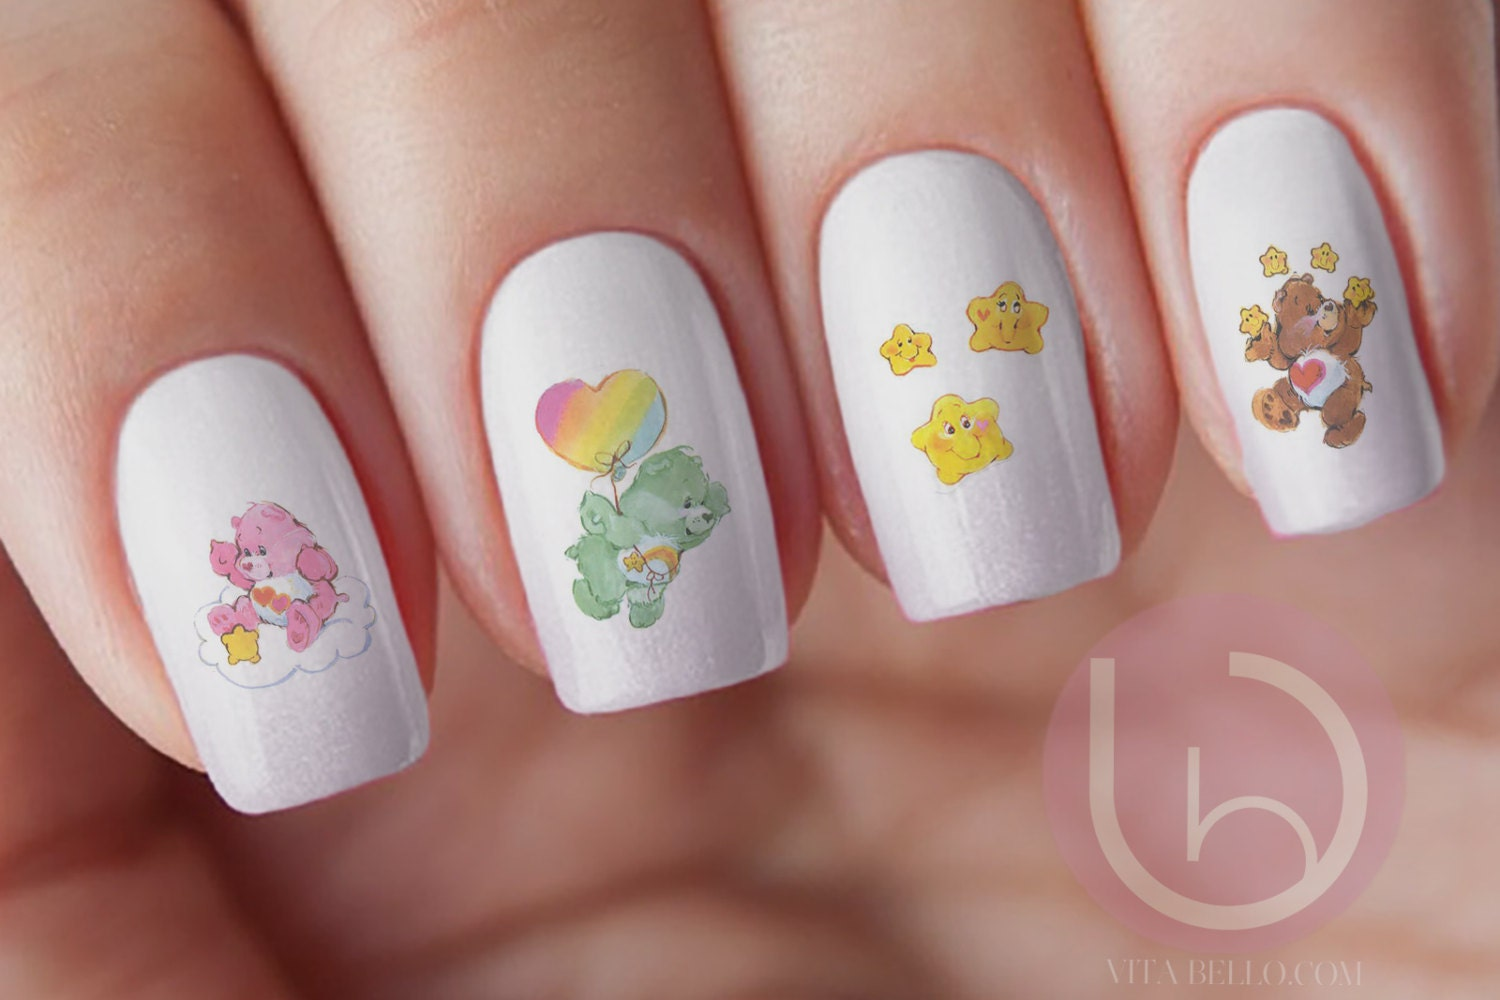 Care bear waterslide nail decal nail design nails press on zoom prinsesfo Image collections